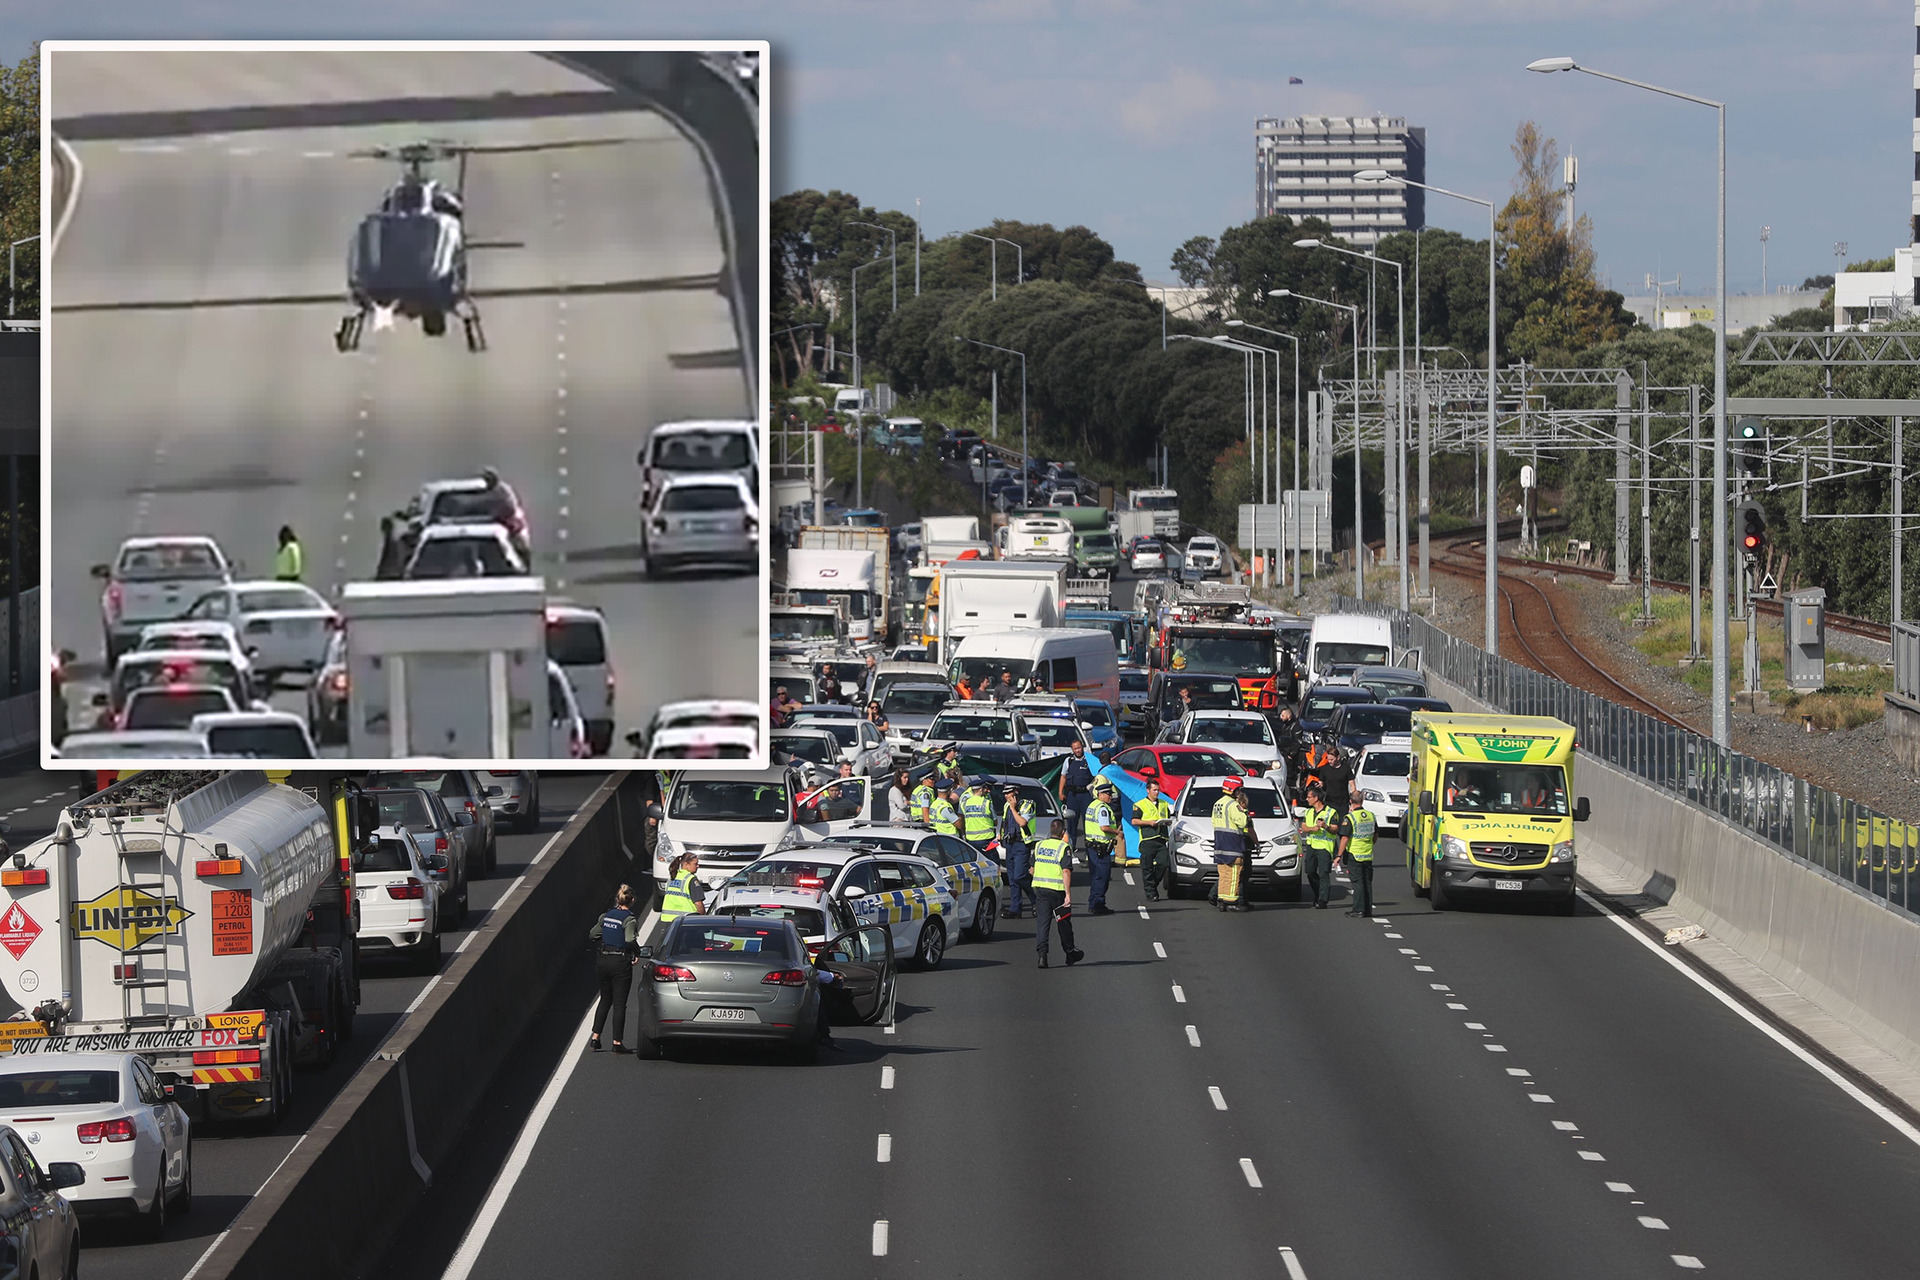 Traffic chaos: One person dead after fall from vehicle on